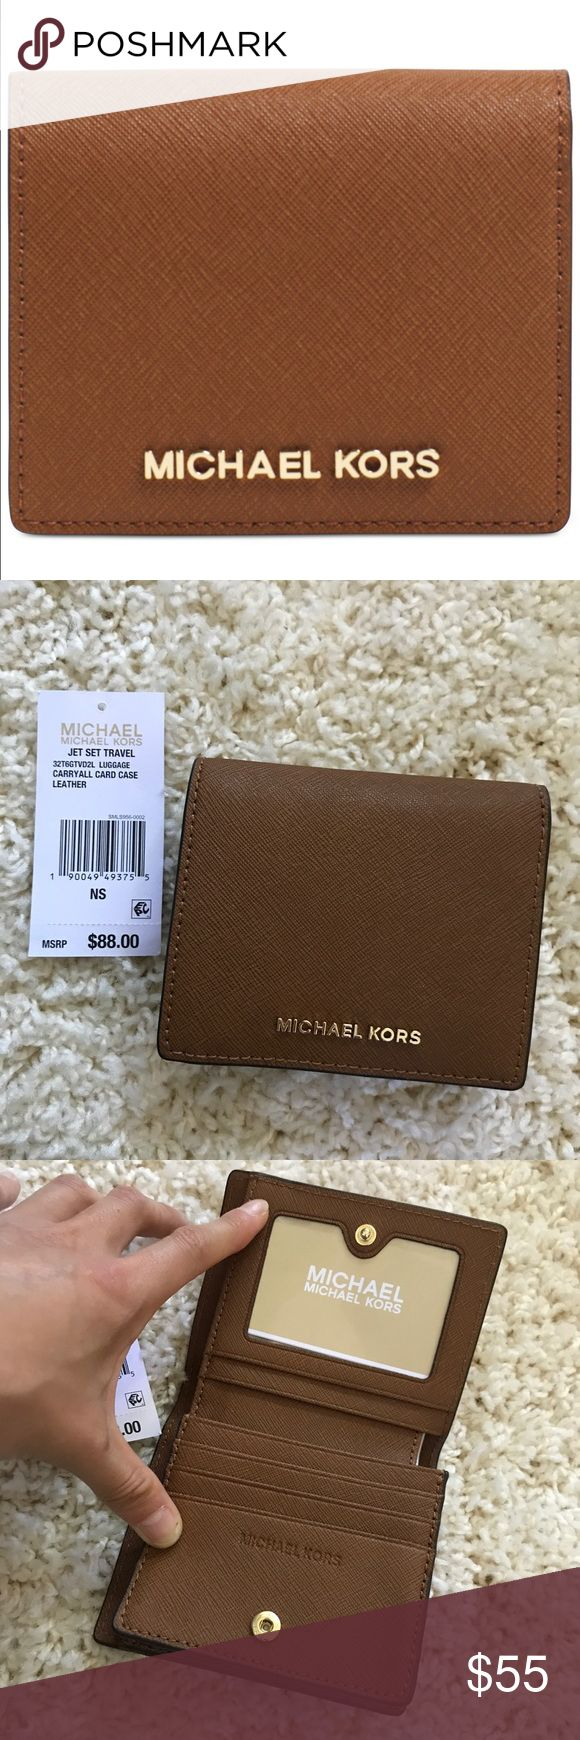 Michael Kors Jet Set Travel Wallet Carryall Card Case Leather. So cute and perfect for travel. MICHAEL Michael Kors Bags Wallets